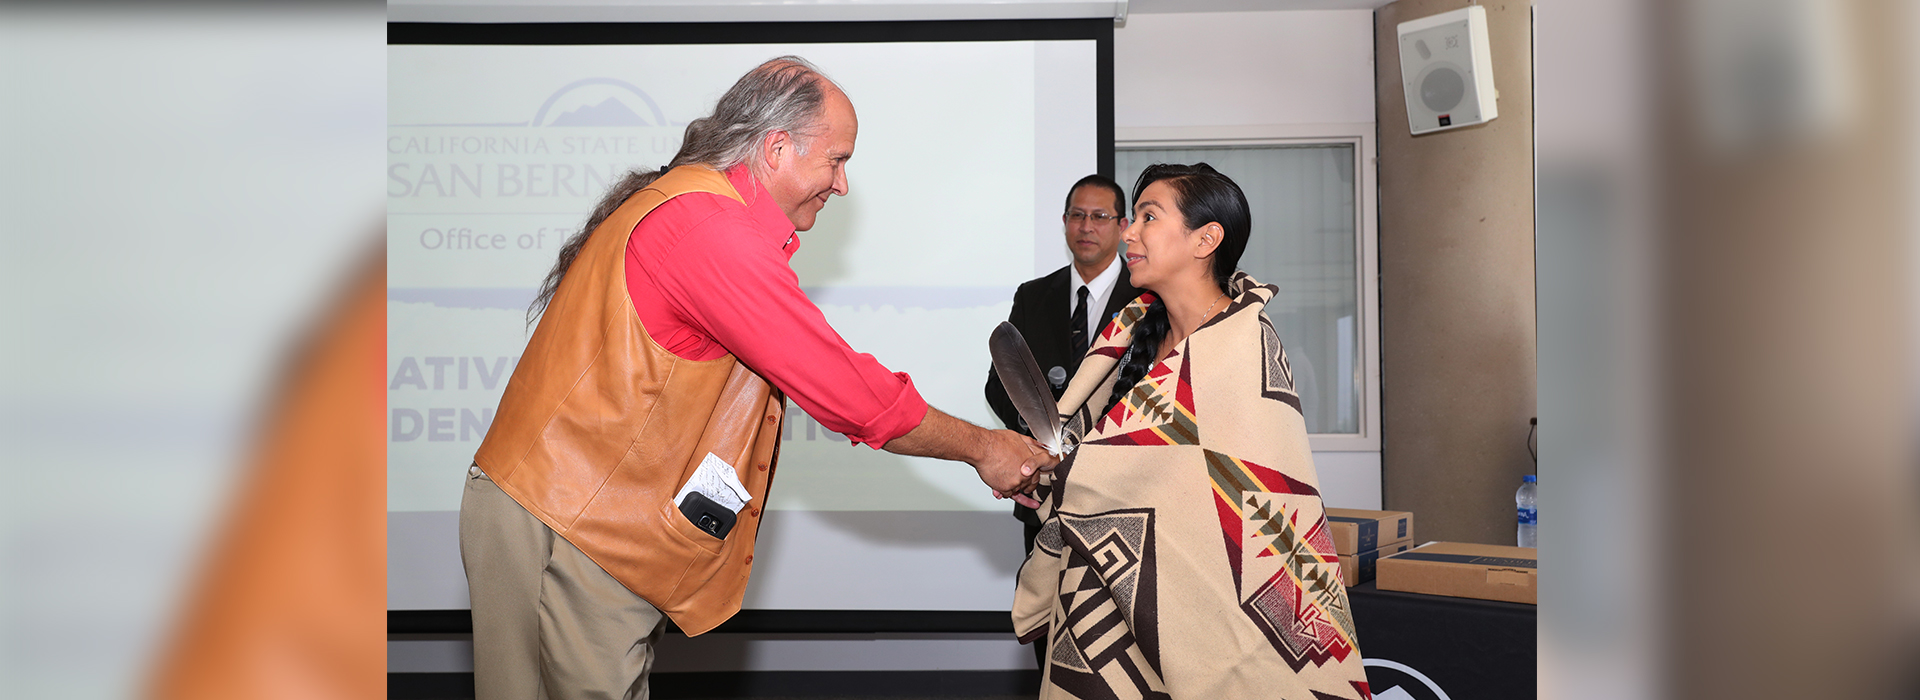 CSUSB honors Native American students at recognition ceremony